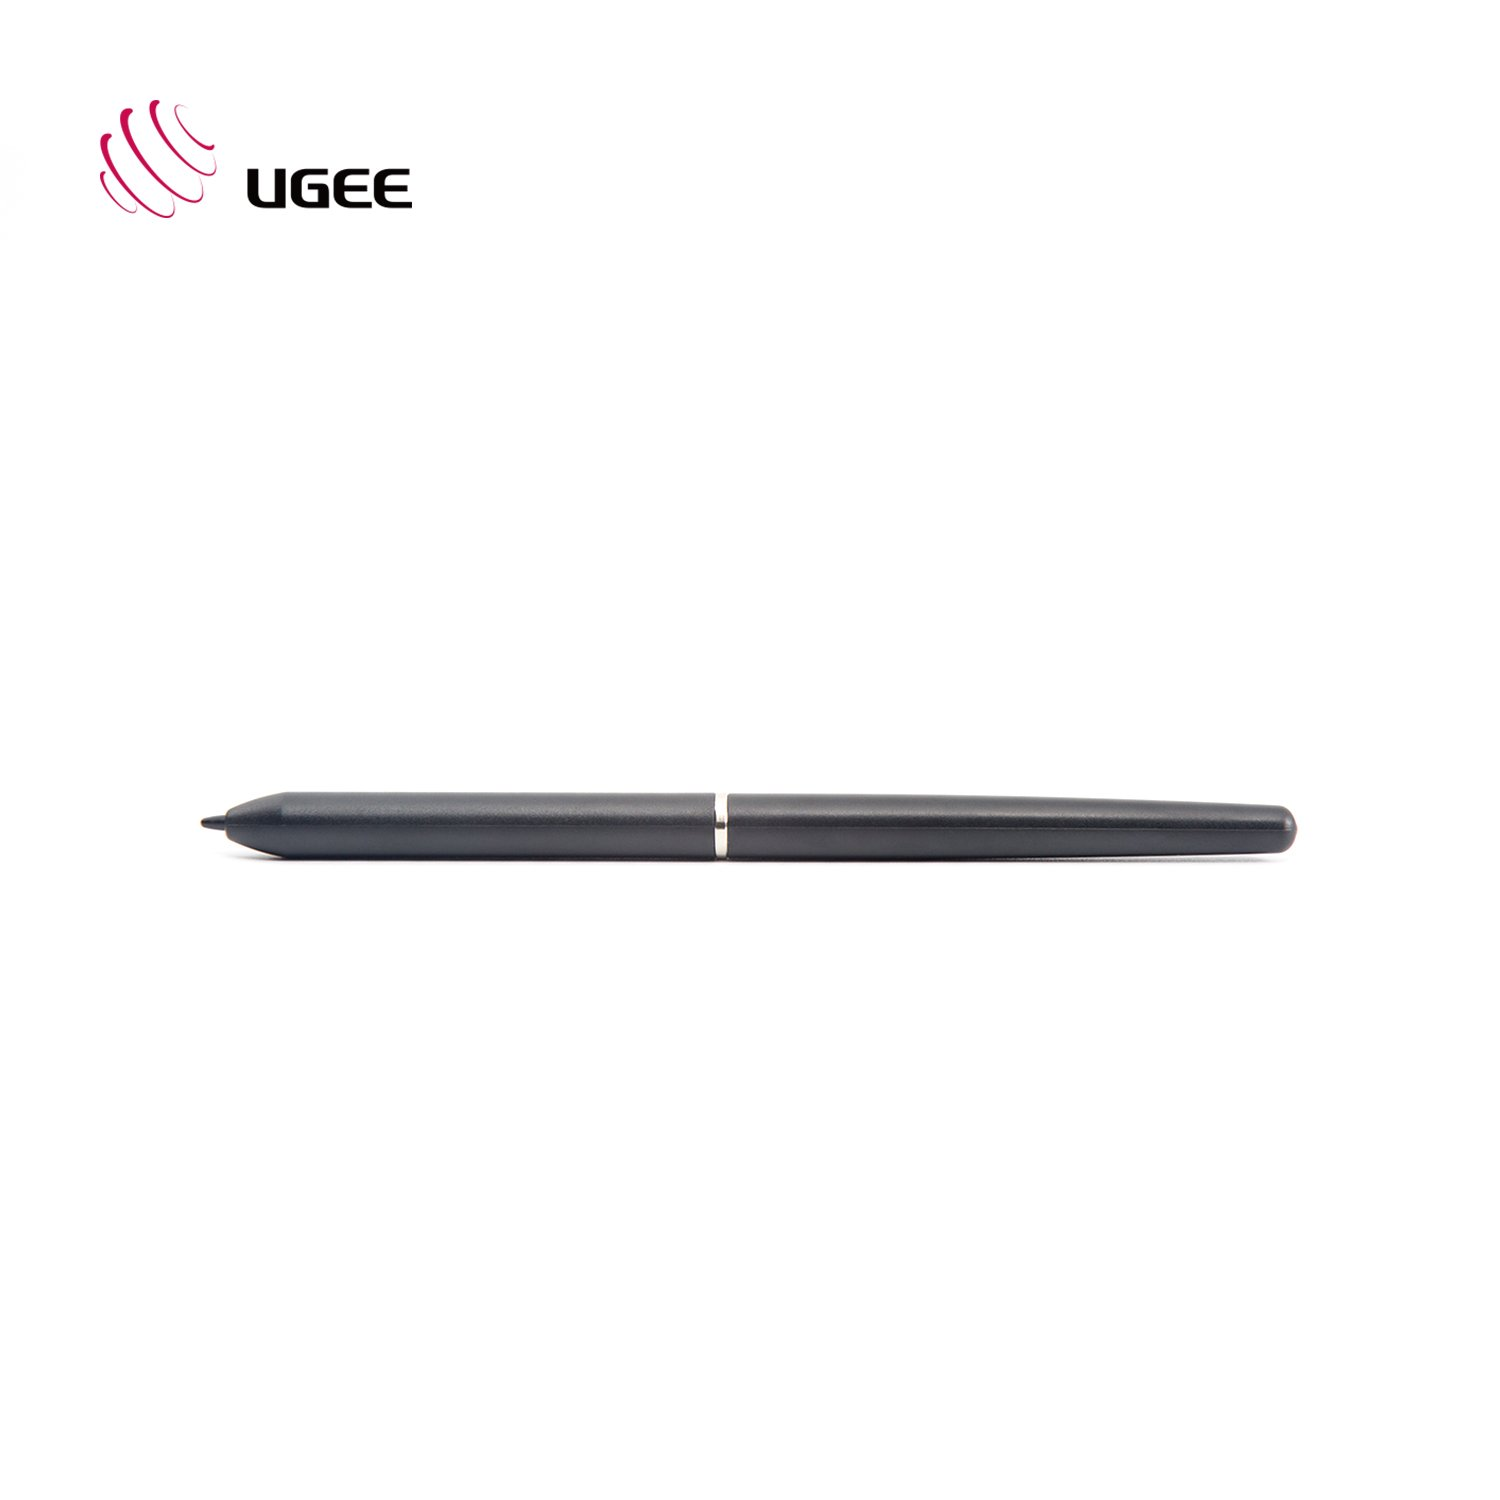 Ugee P57 battery-free pen Accessories image1